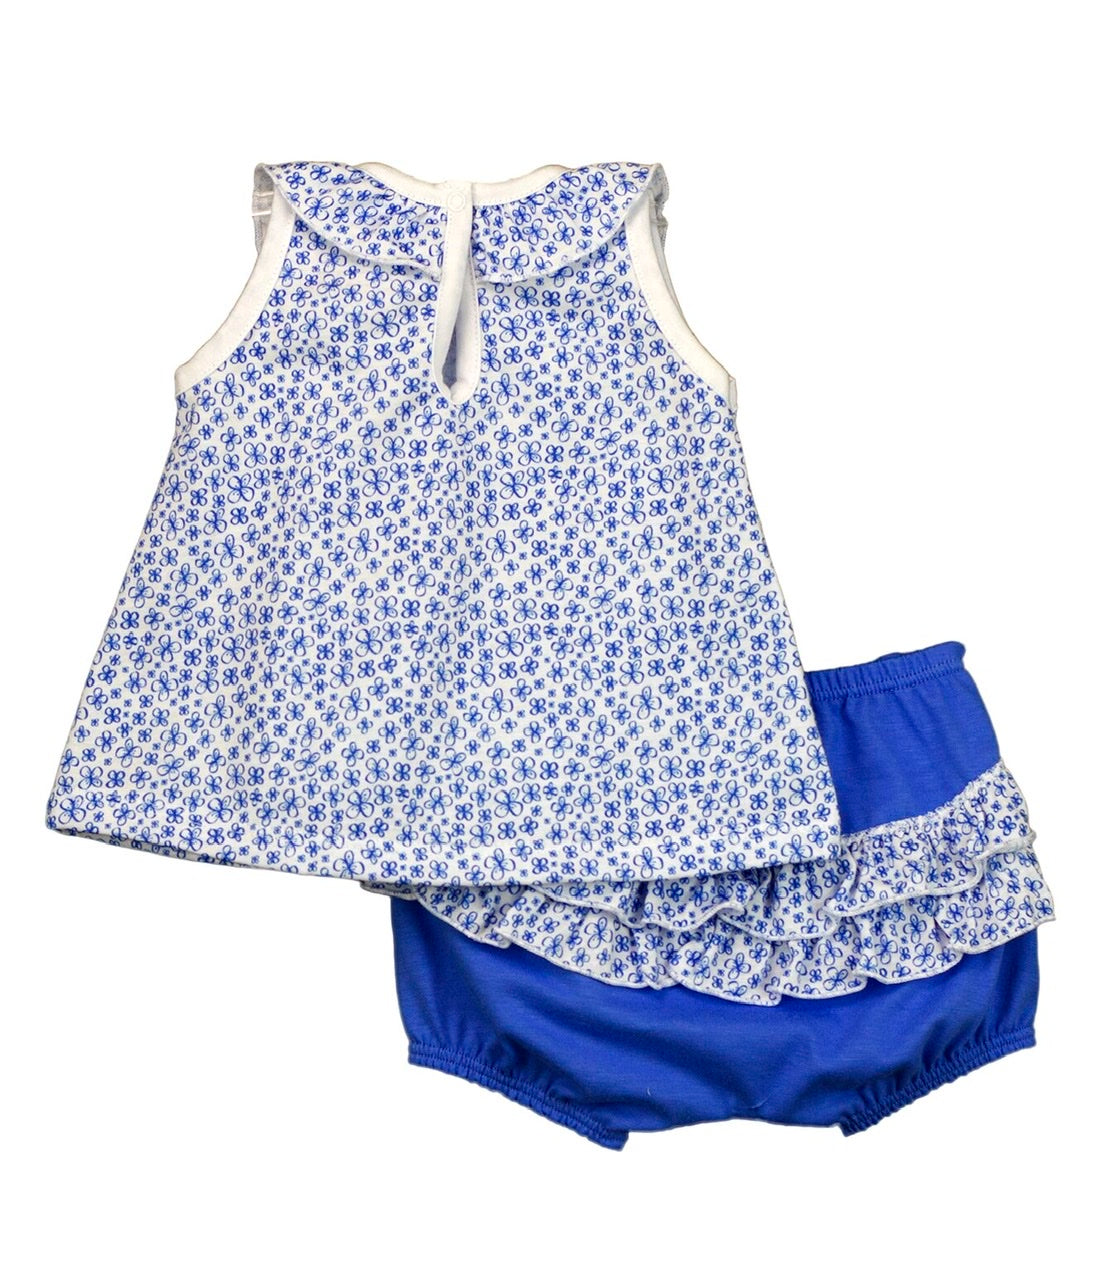 Rapife Baby Girls Ditsy Floral Top & Shorts Set SALE